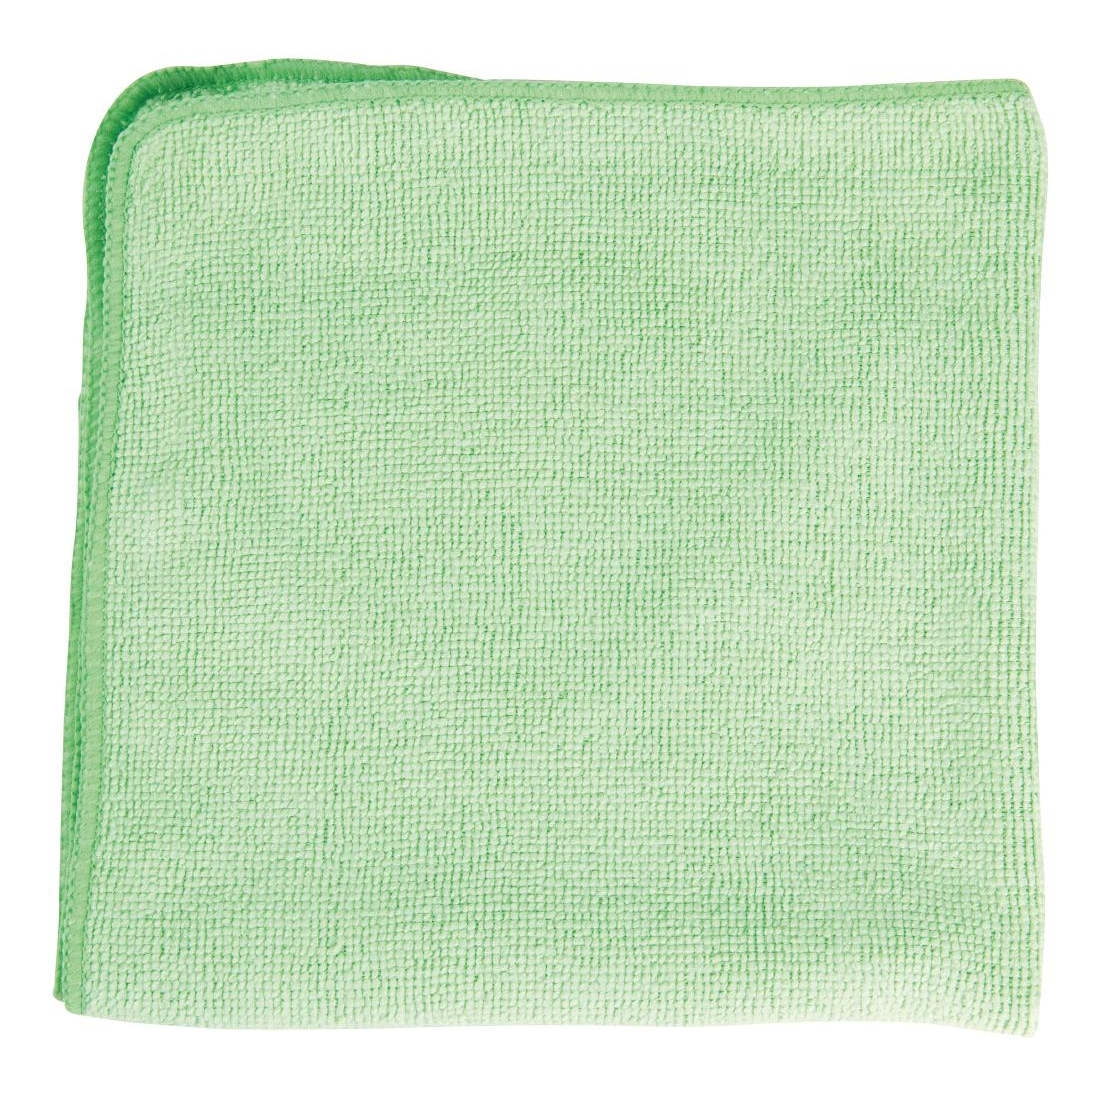 Rubbermaid Pro Microfibre Cloth Green